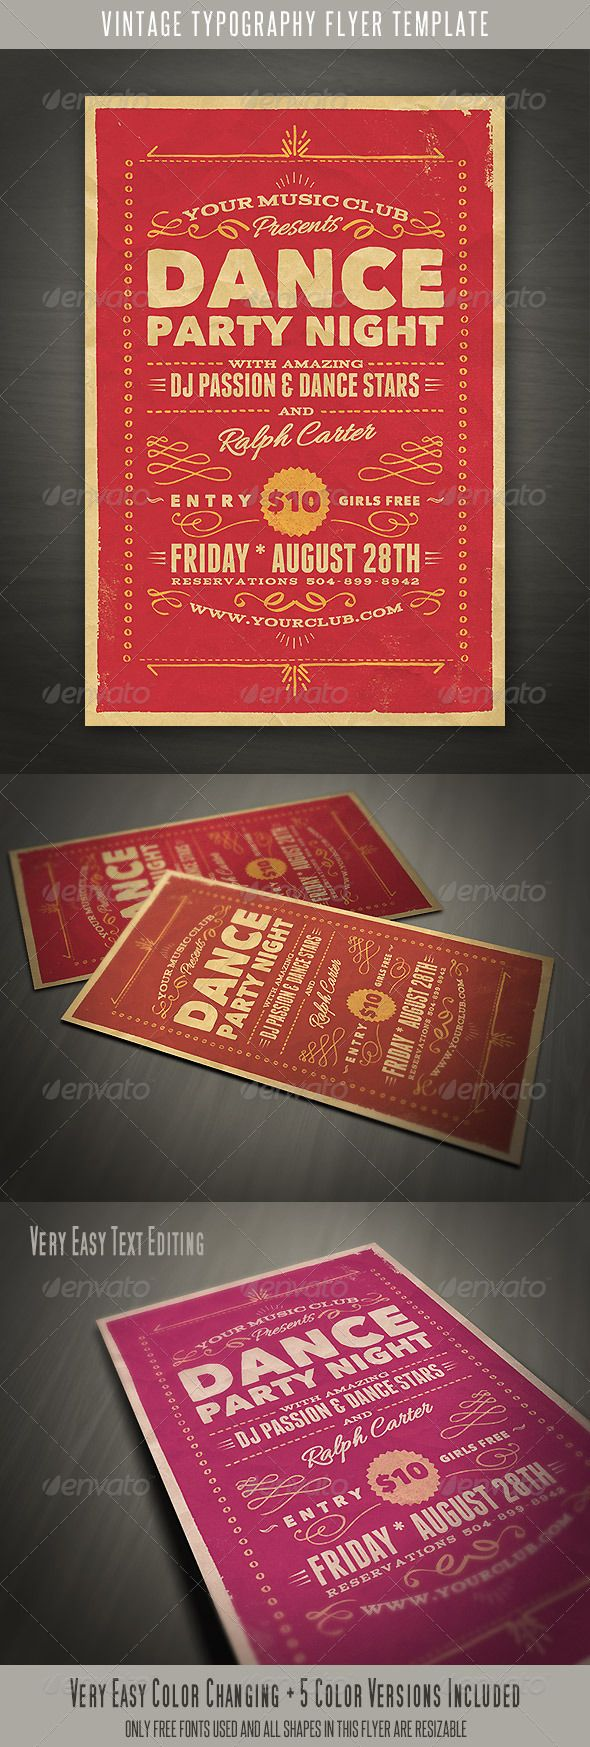 Vintage Style Typography Flyer — Photoshop PSD #fonts #minimalistic • Available here → https://graphicriver.net/item/vintage-style-typography-flyer-/5246393?ref=pxcr